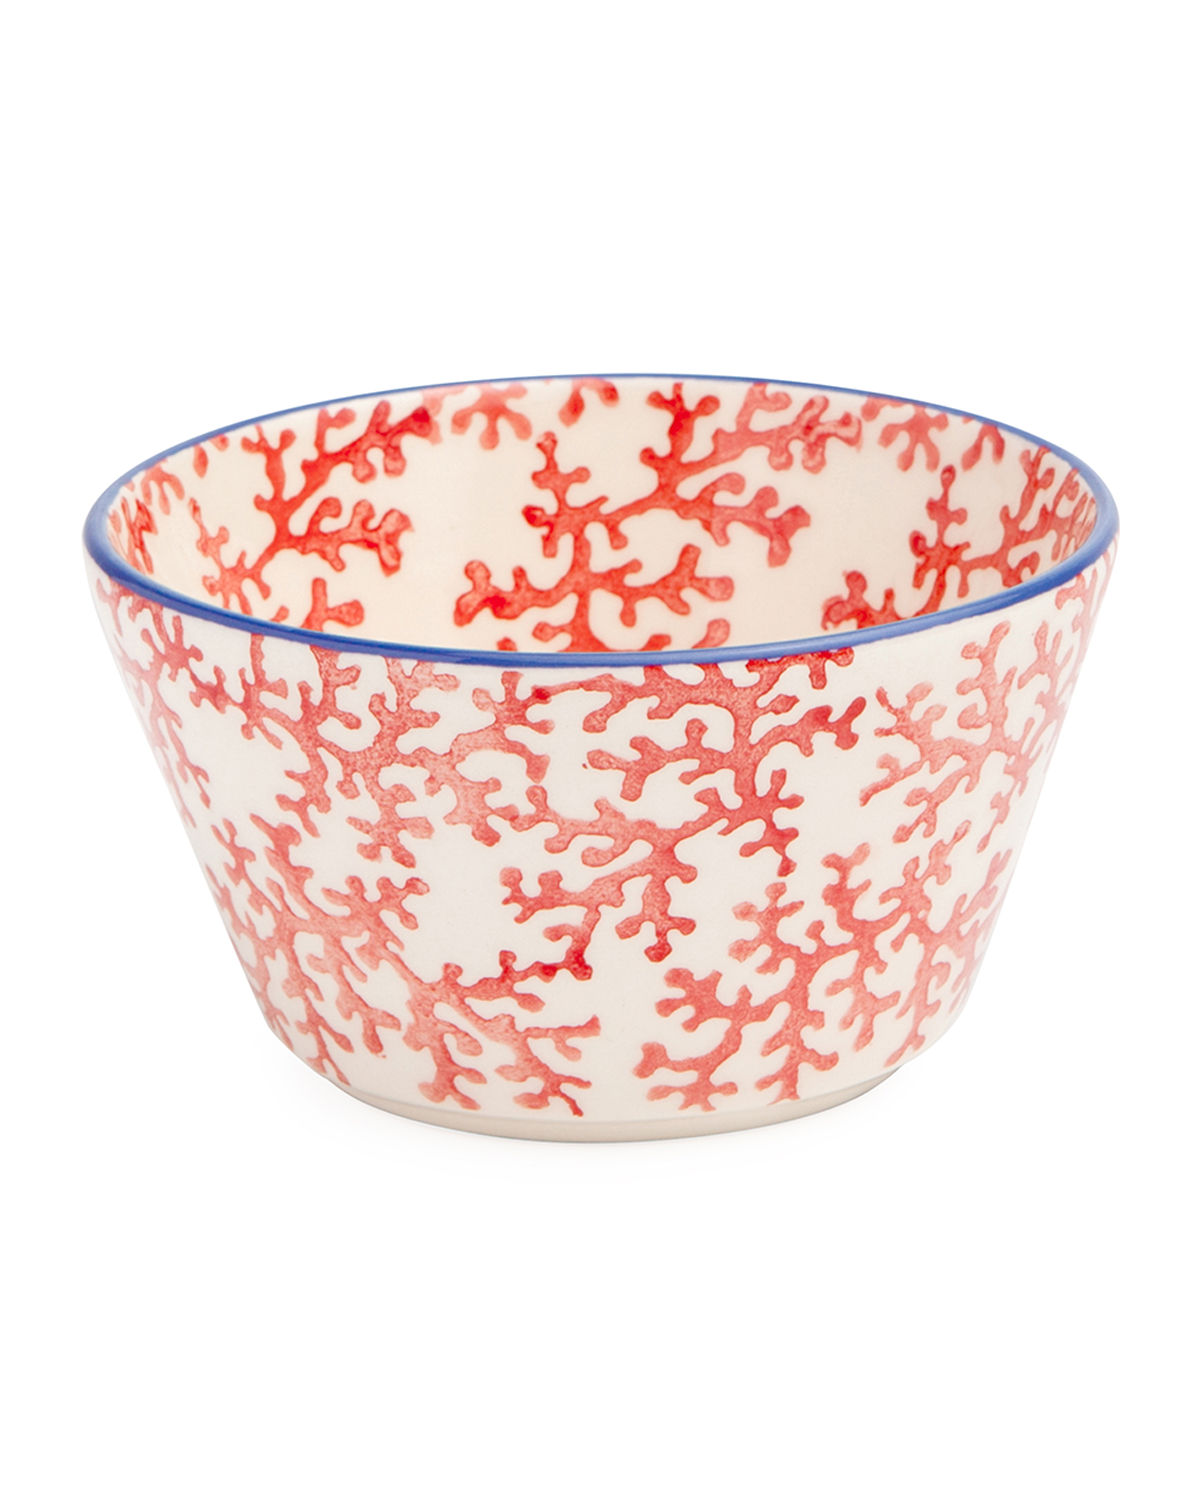 Sienna Coral Cereal/Ice Cream Bowls, Set of 4